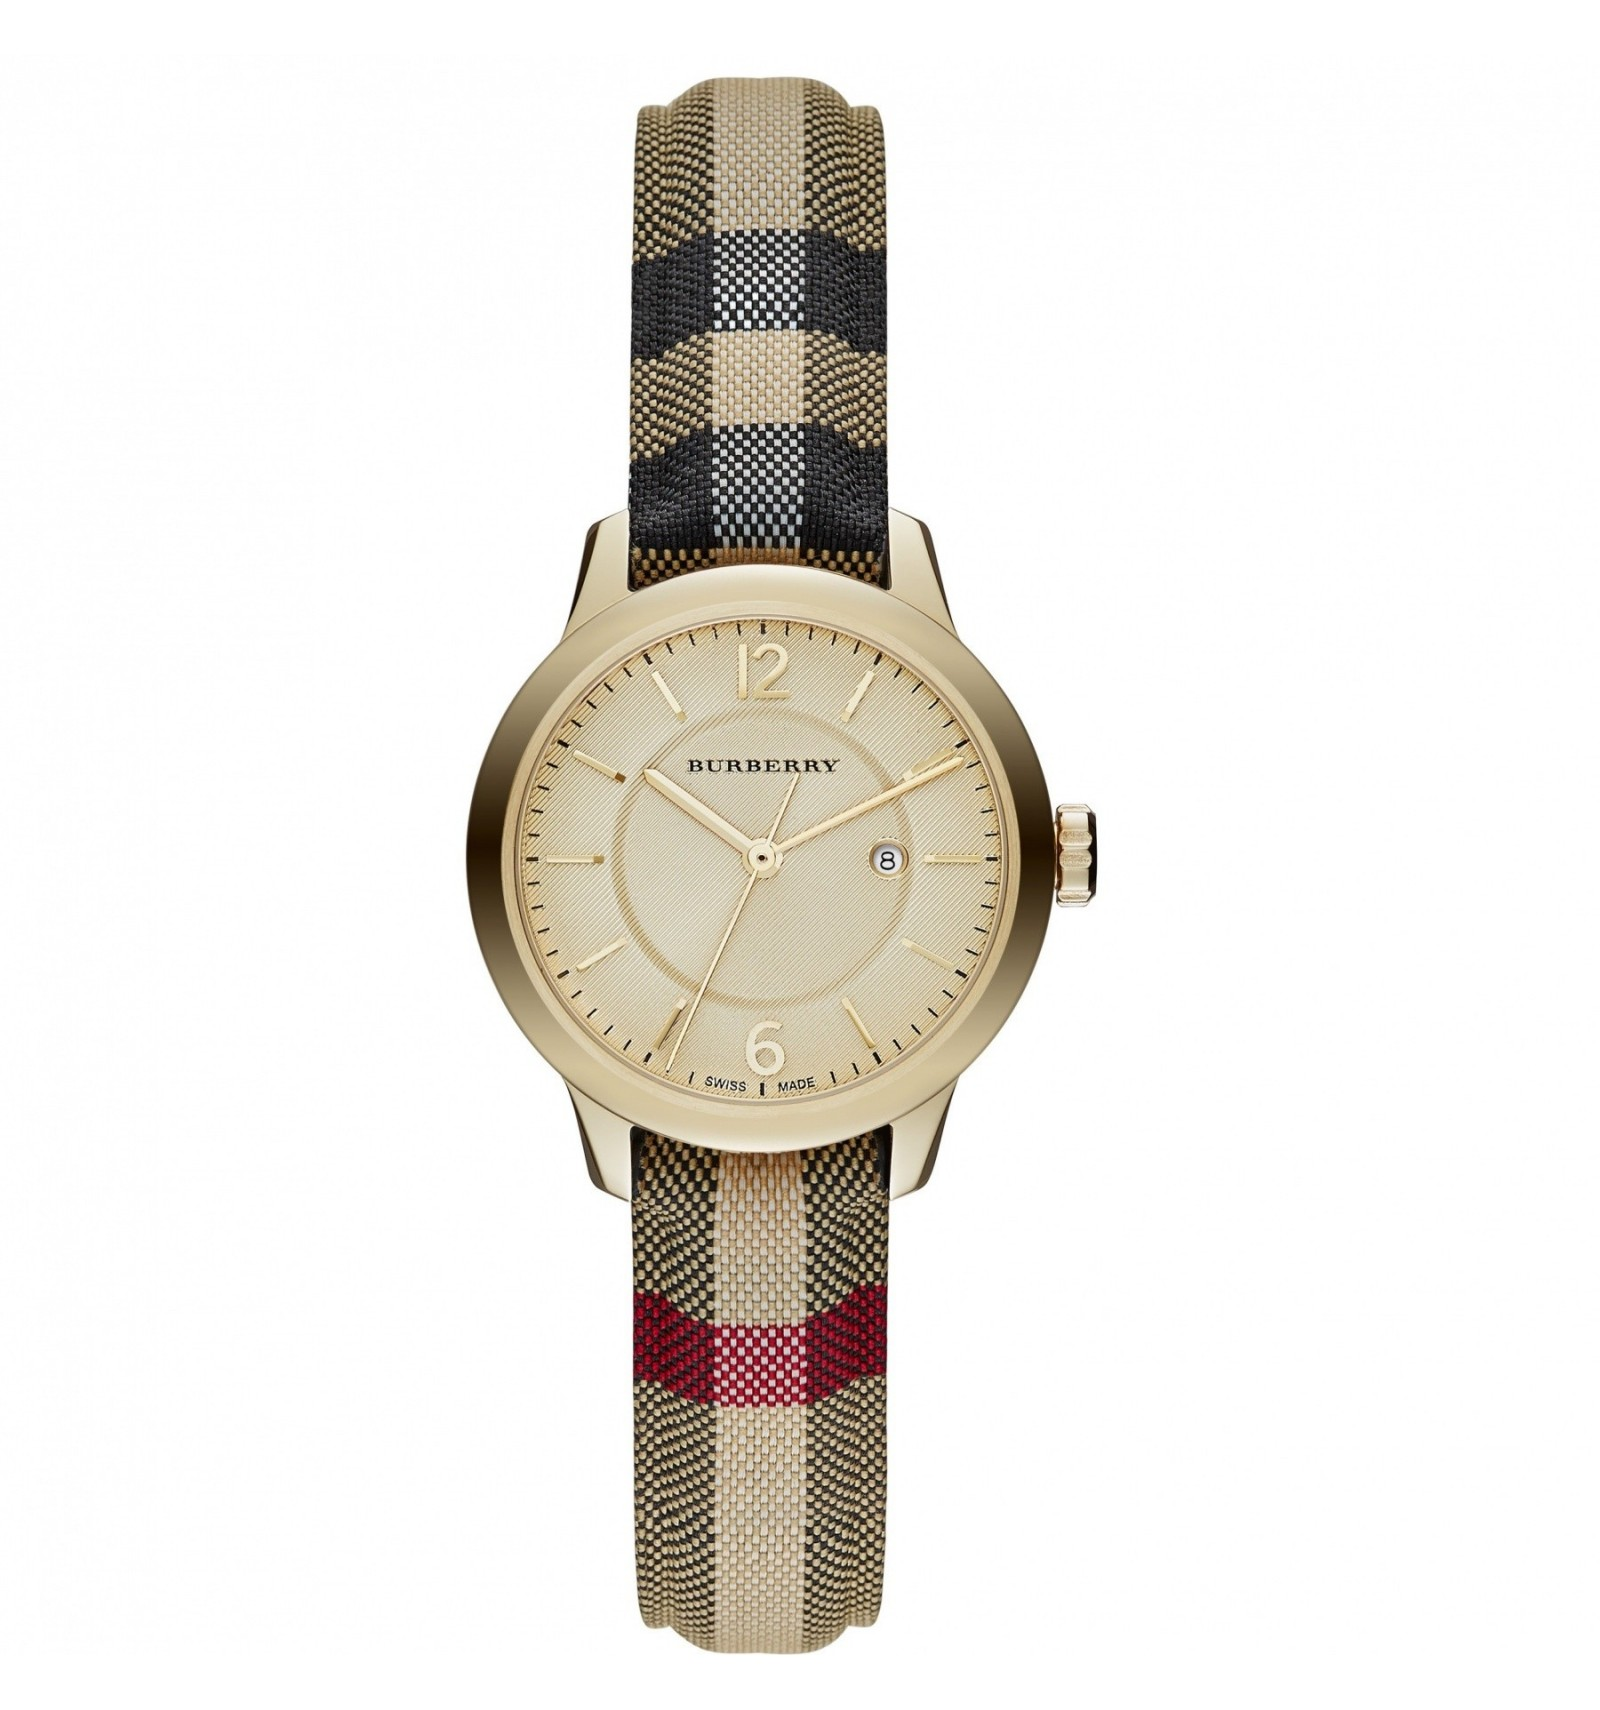 Swiss military hanowa  мы работаем каждый день с 9 до  подробнее burberry watches if you have a love for british fashion, swagger, and heritage, then showcase your devotion with a burberry watch.